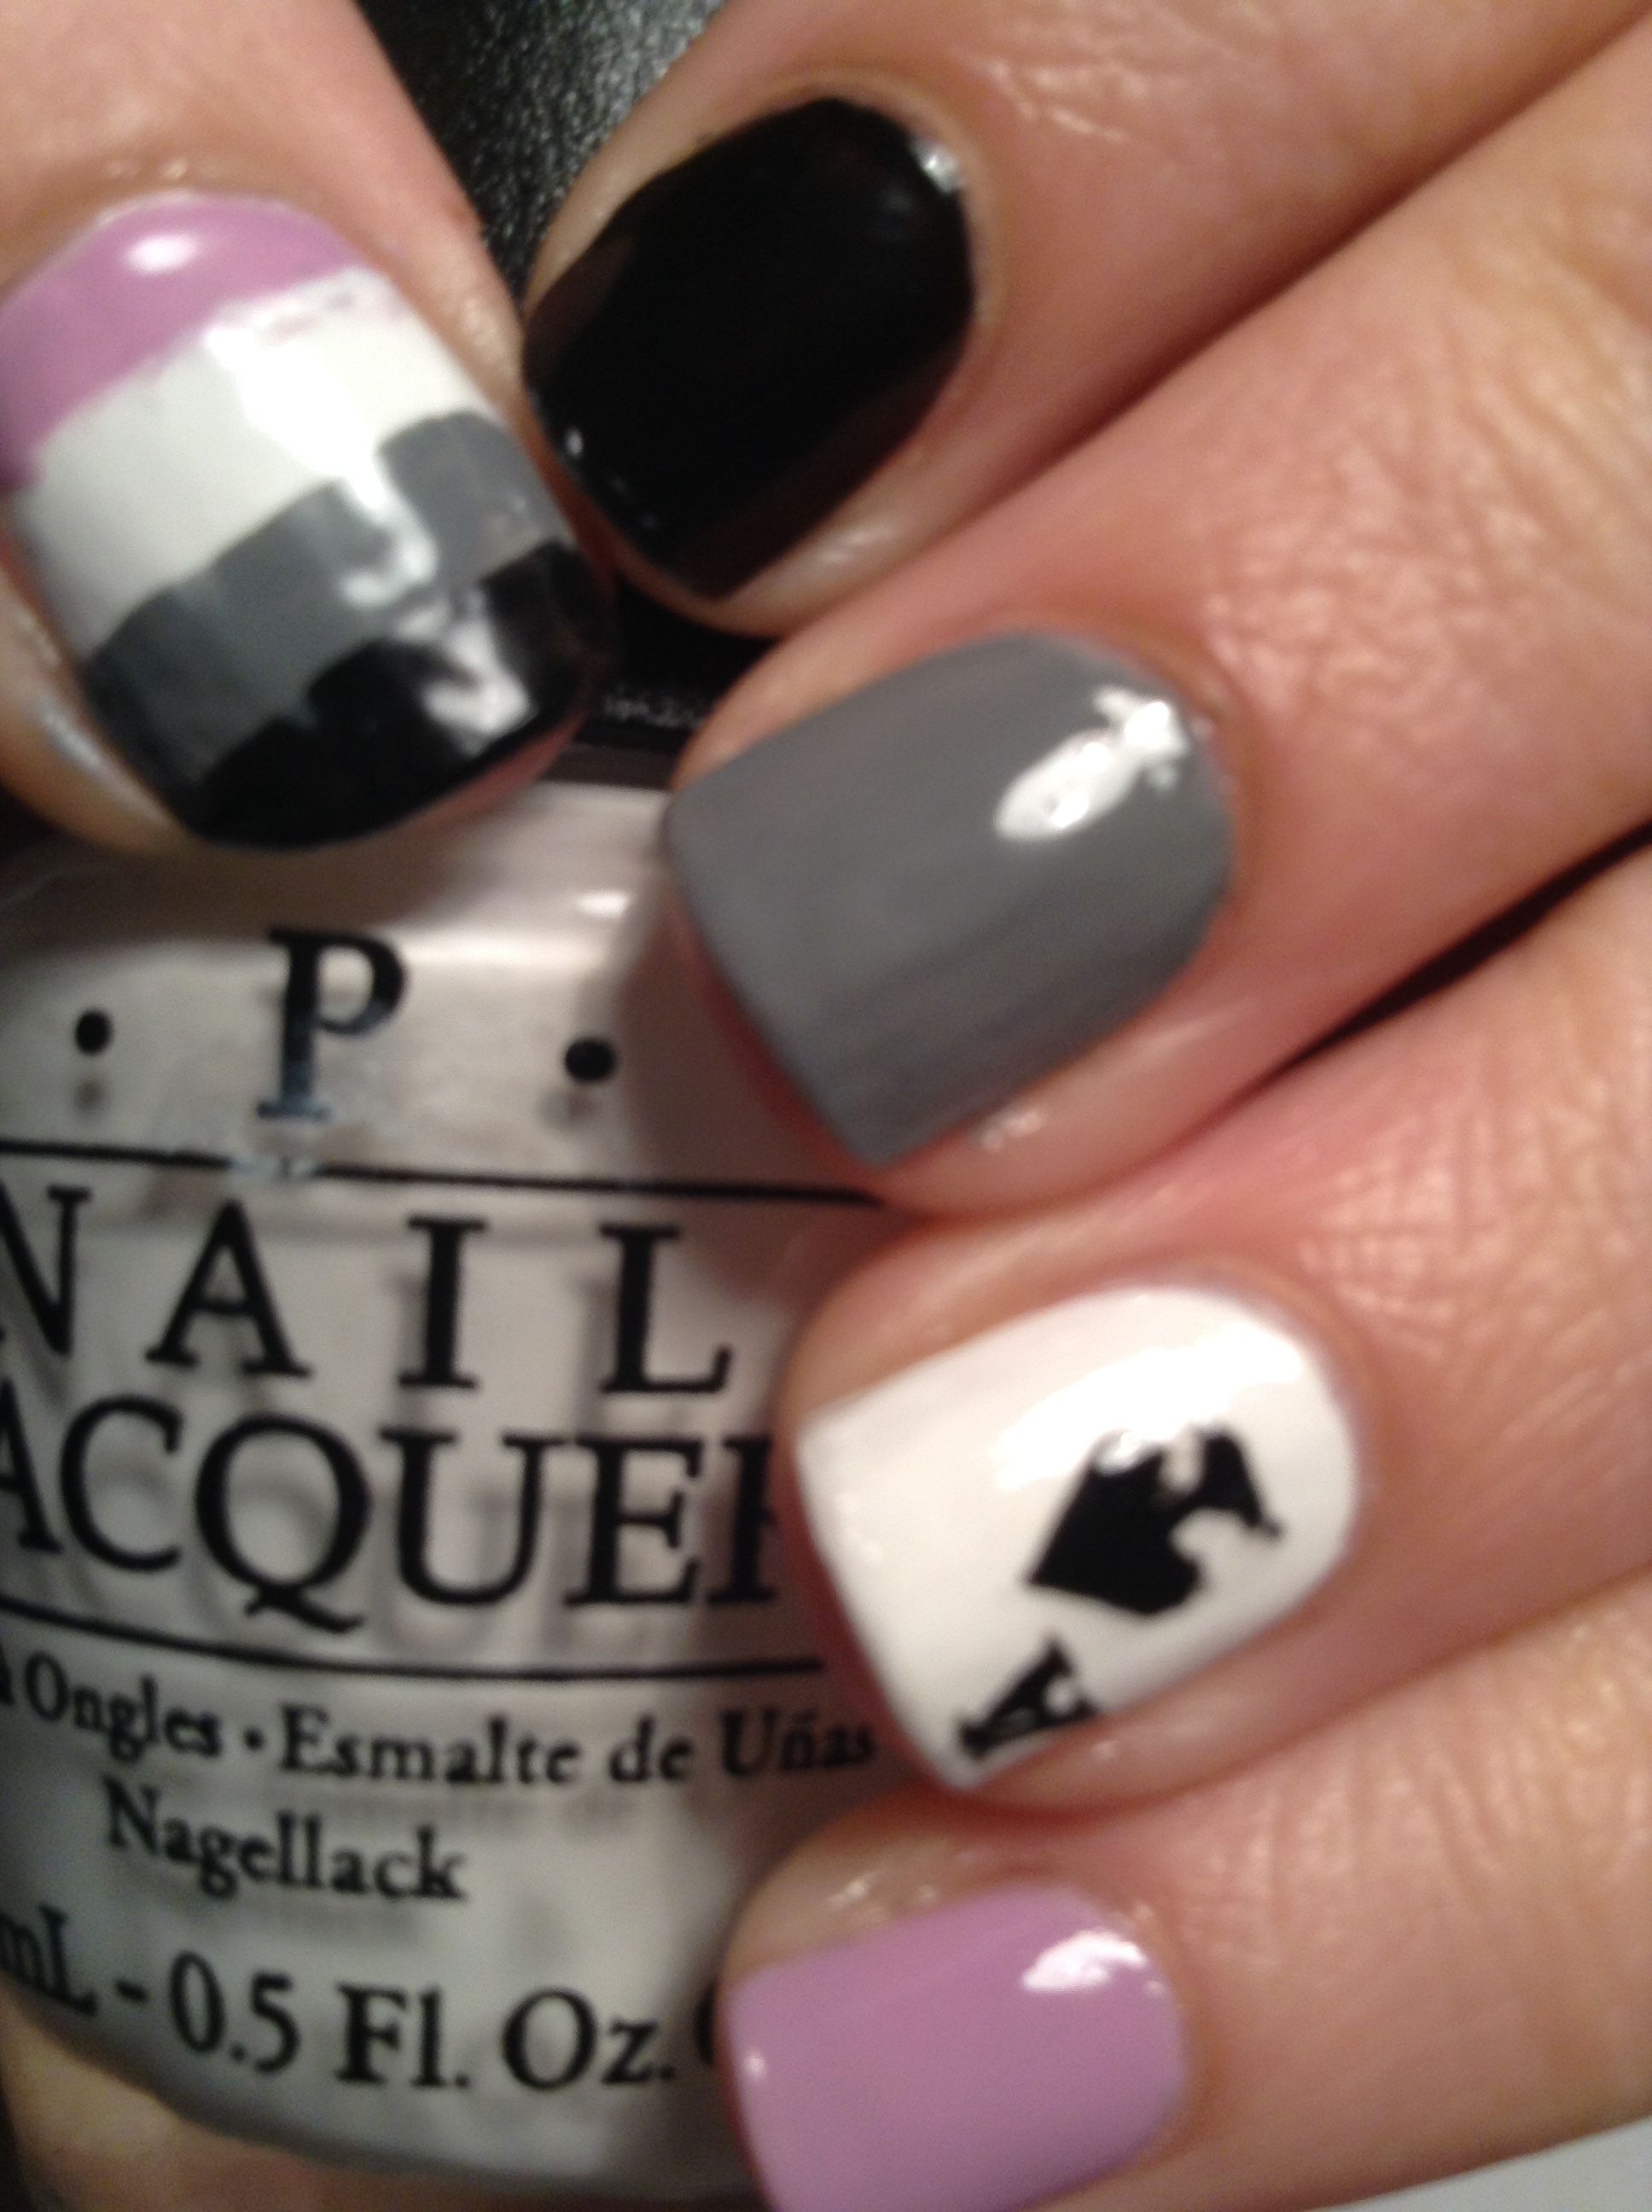 Ace pride nail art, inspired by the colours of the asexuality flag.